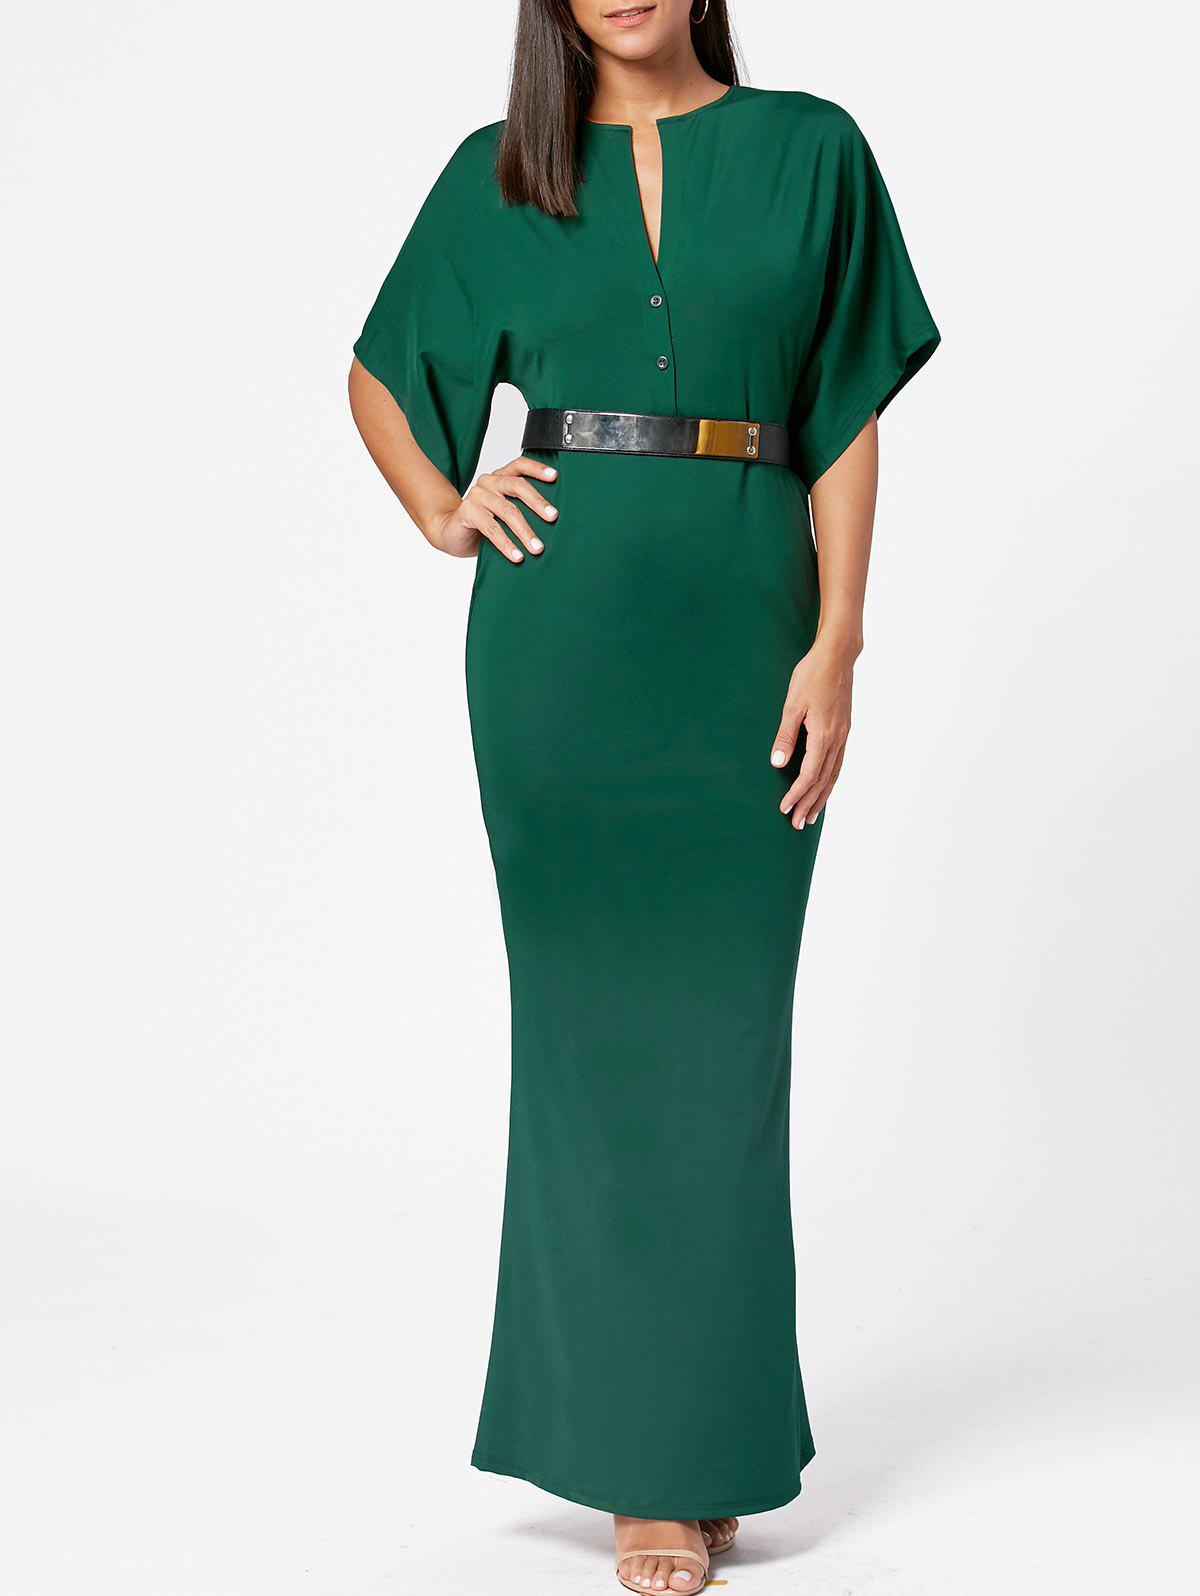 Raglan Sleeve V Neck Bodycon Maxi Dress - armée verte S